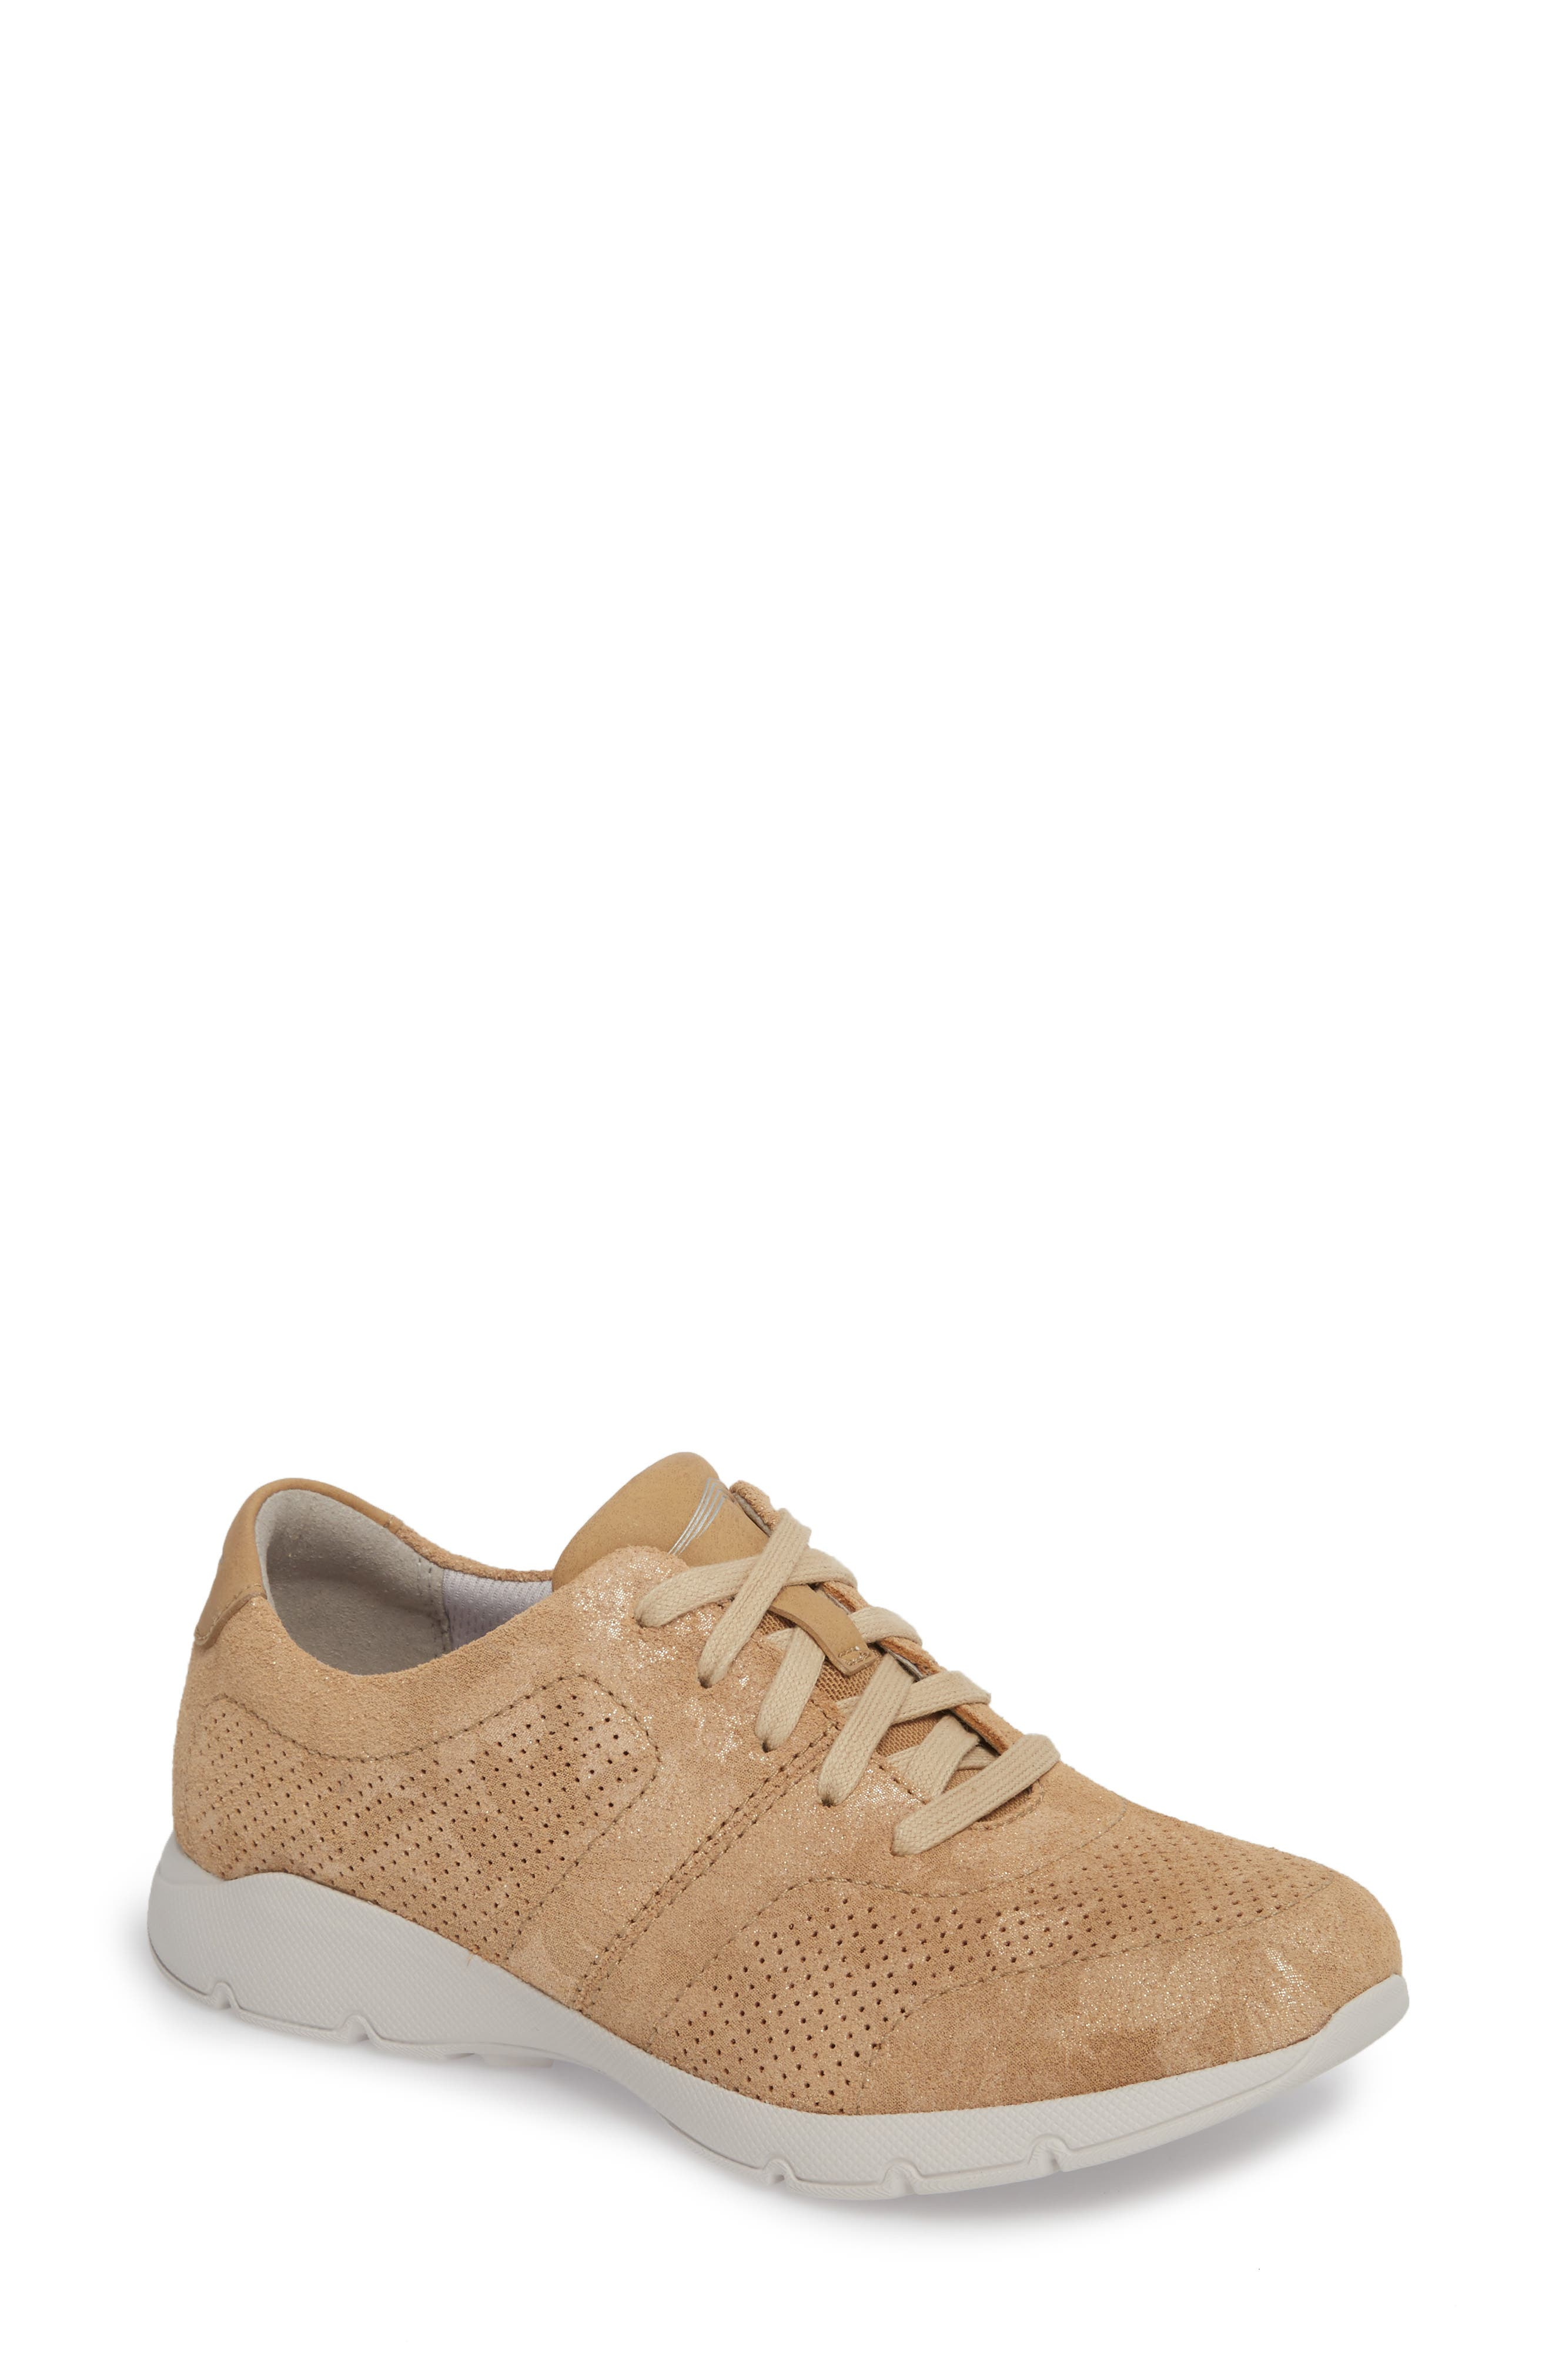 Alissa Sneaker,                             Main thumbnail 1, color,                             GOLD PRINT LEATHER